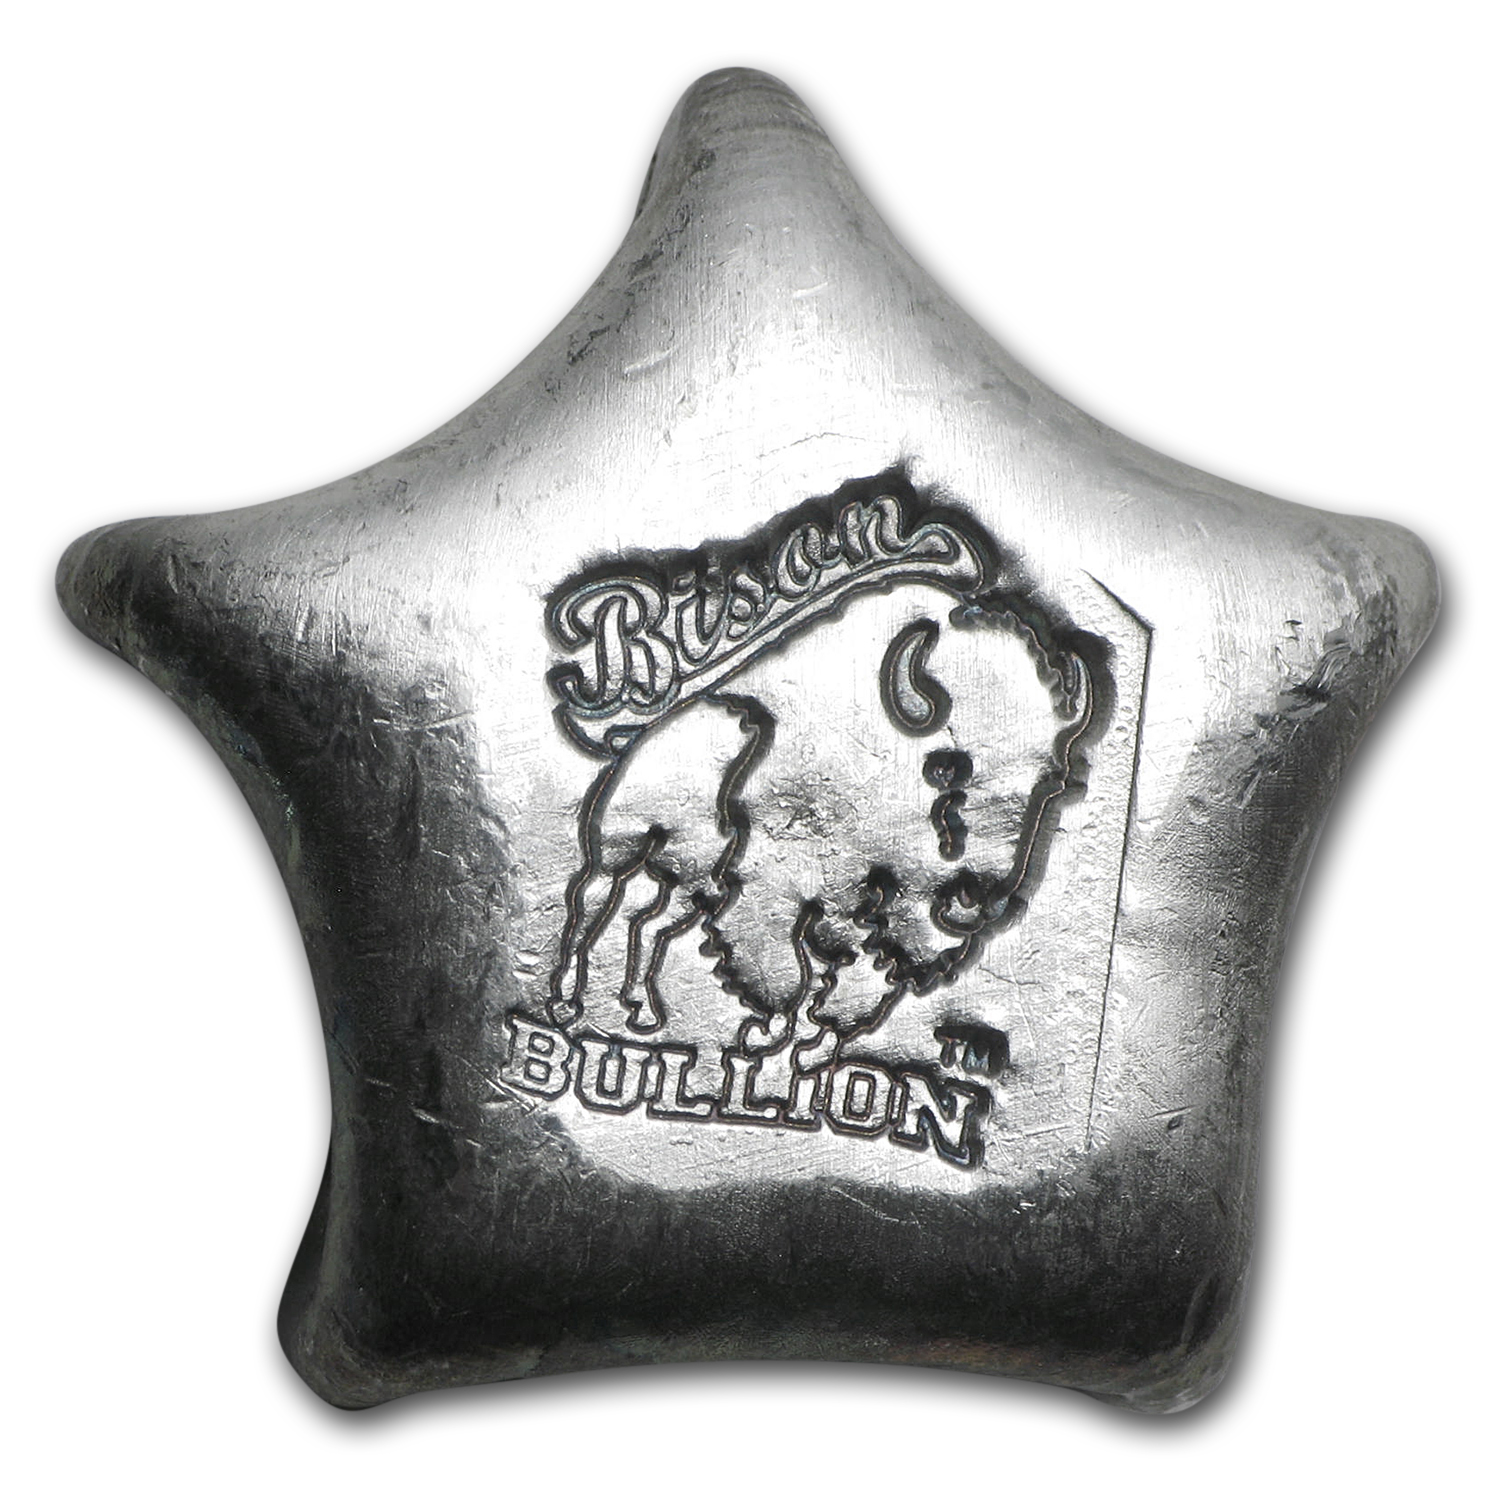 1 oz Silver Stars - Bison Bullion